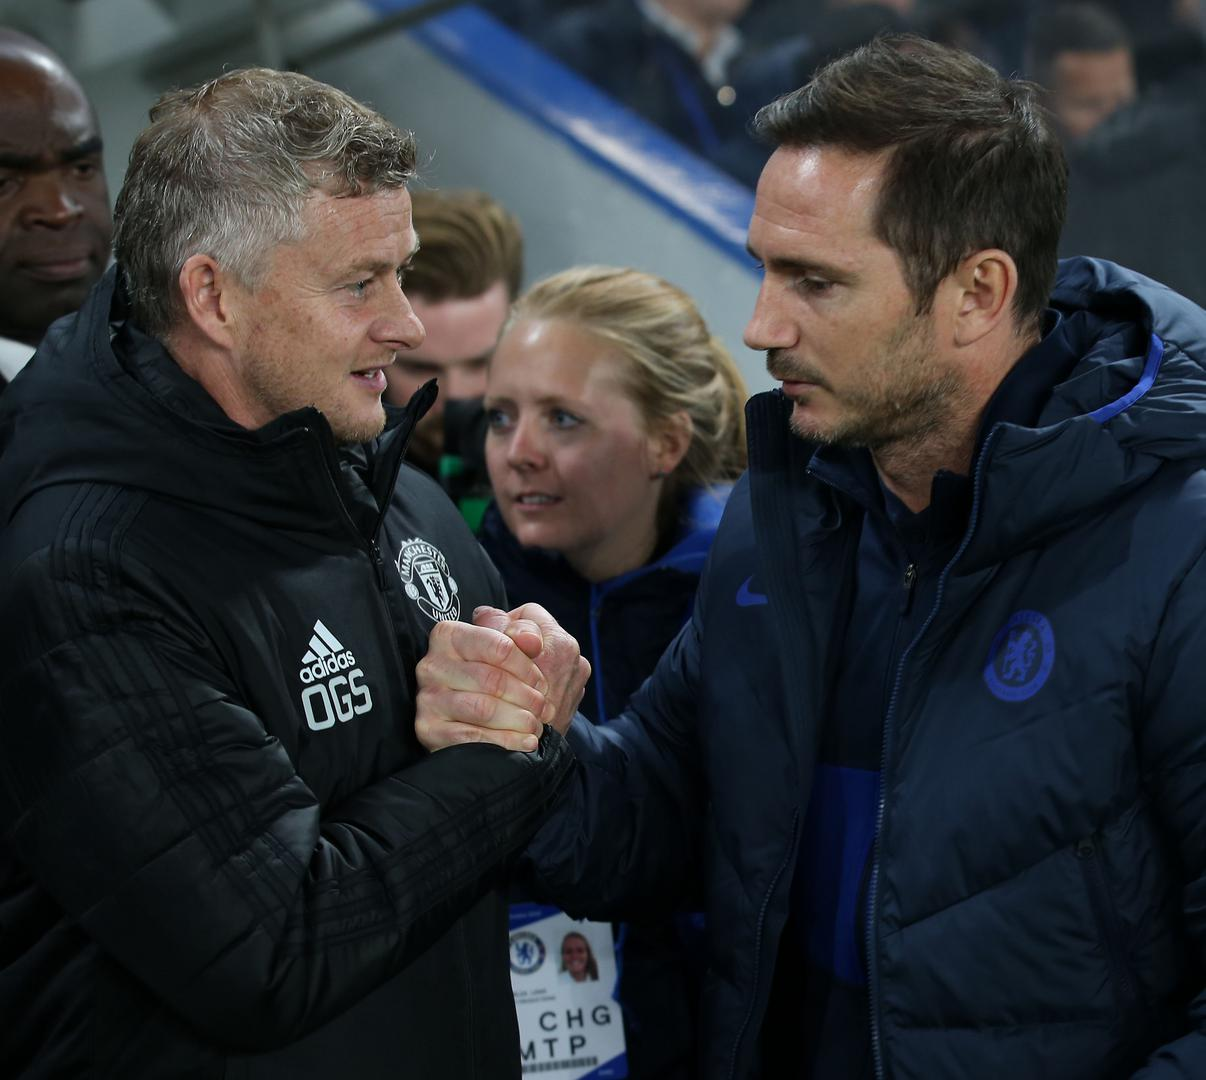 Ole Gunnar Solskjaer and Frank Lampard.